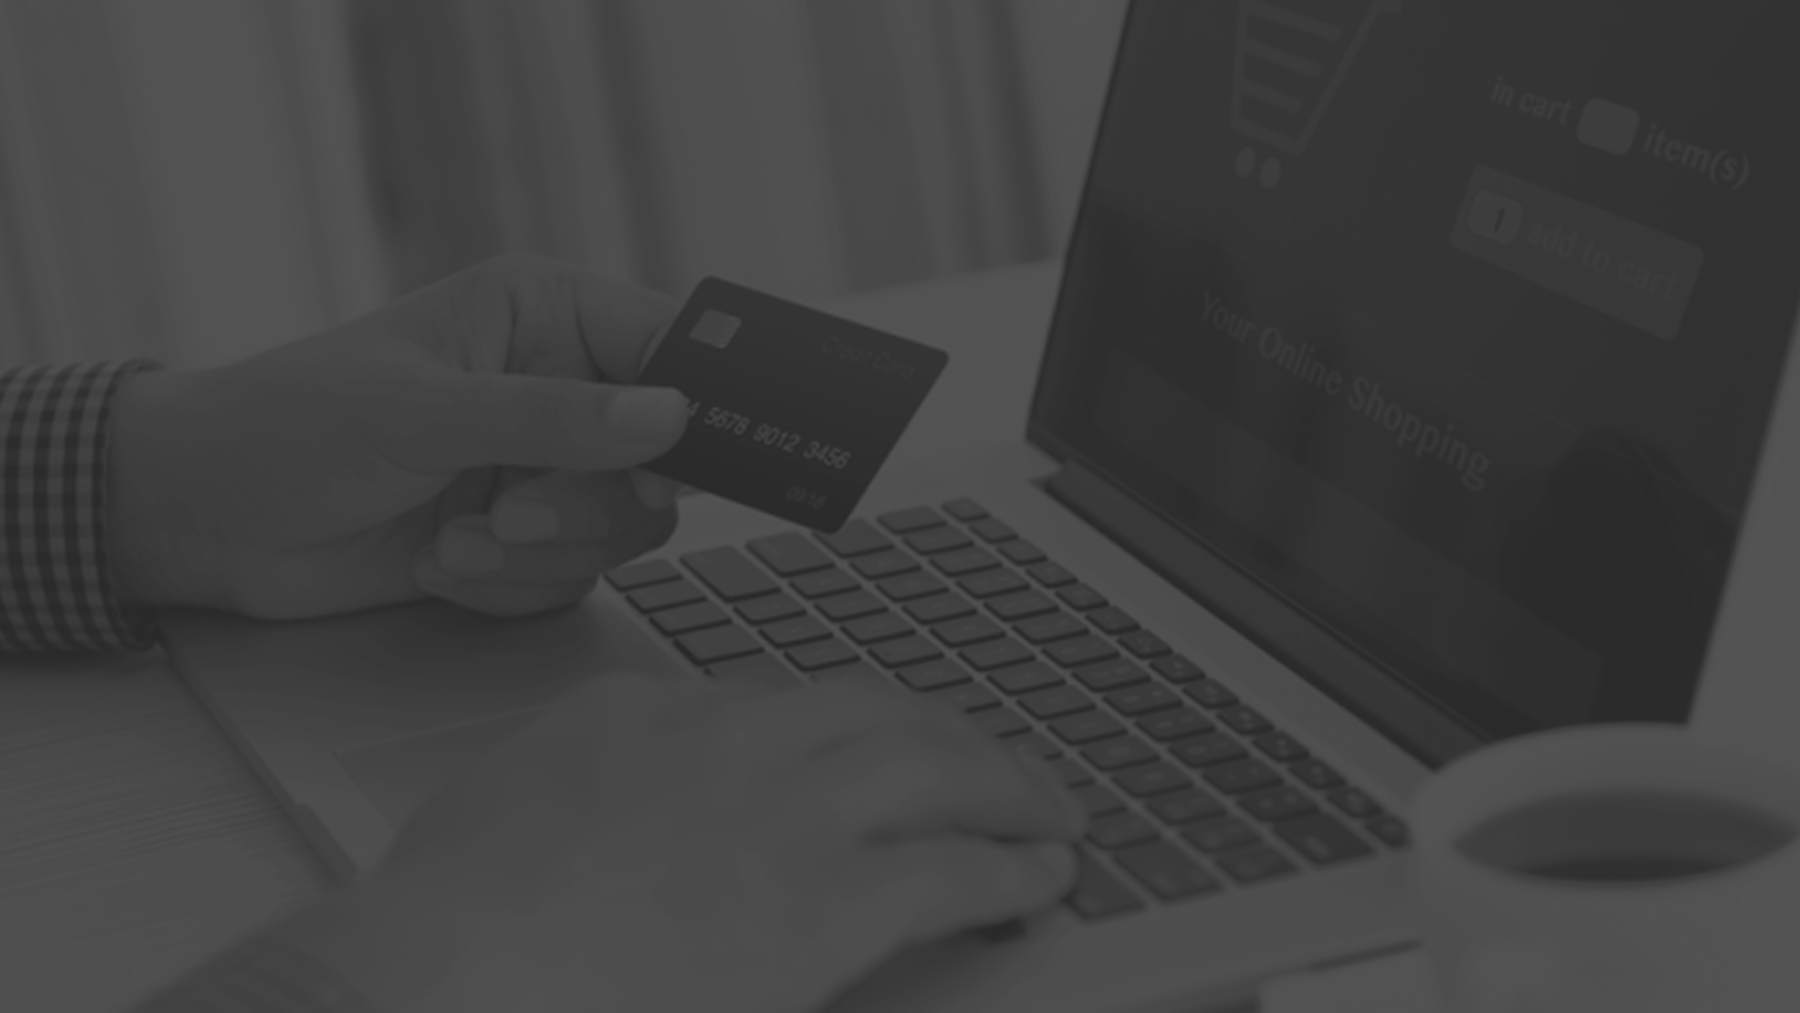 E-Commerce - Our roots stretch back to the initial wave of technology-enabled online commerce businesses — cars, insurance, computers, and airline tickets. We've continued to pioneer new online commerce from cryptocurrency to peer-to-peer marketplaces.